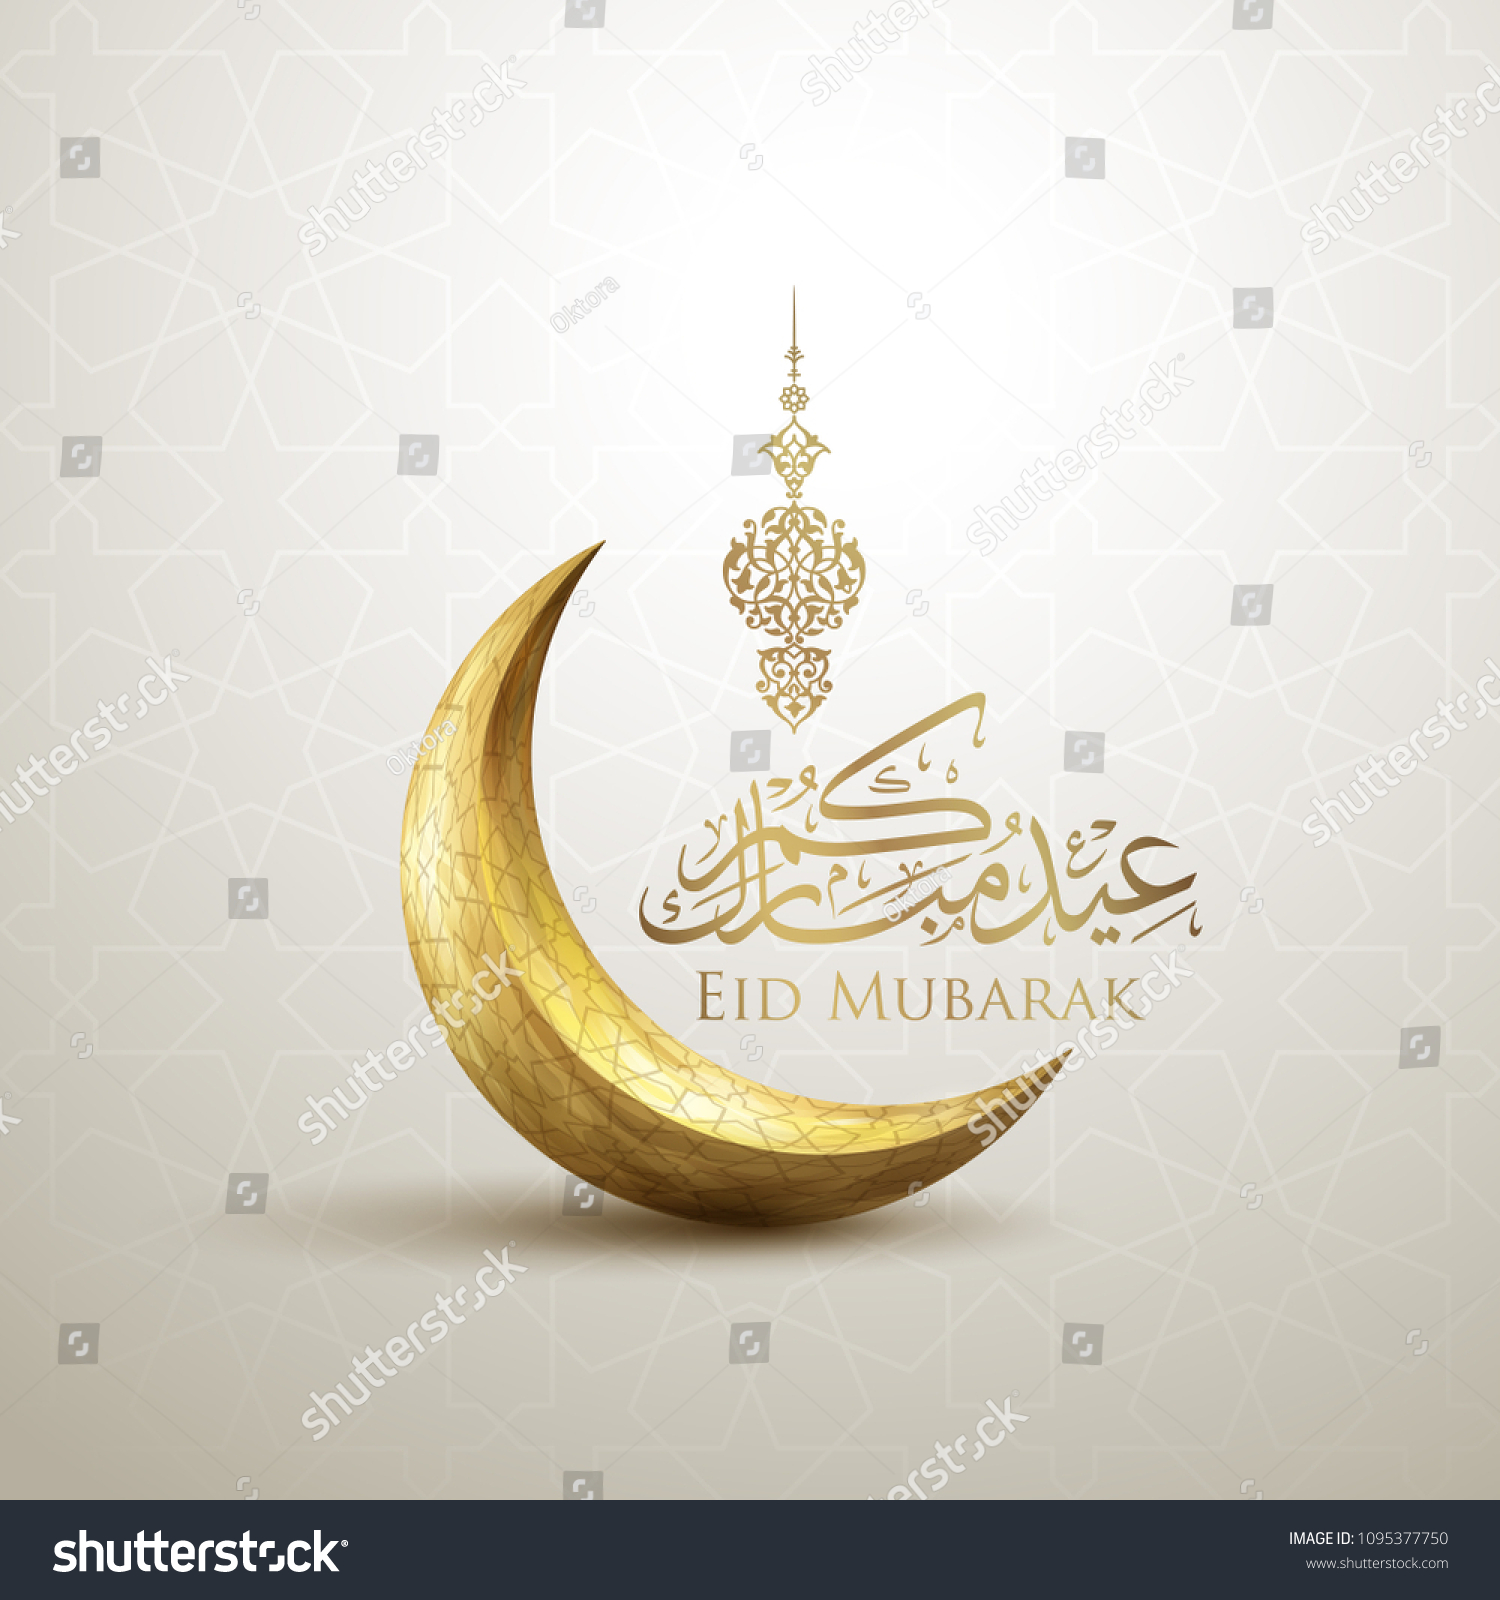 Eid Mubarak islamic design crescent moon and arabic calligraphy #1095377750